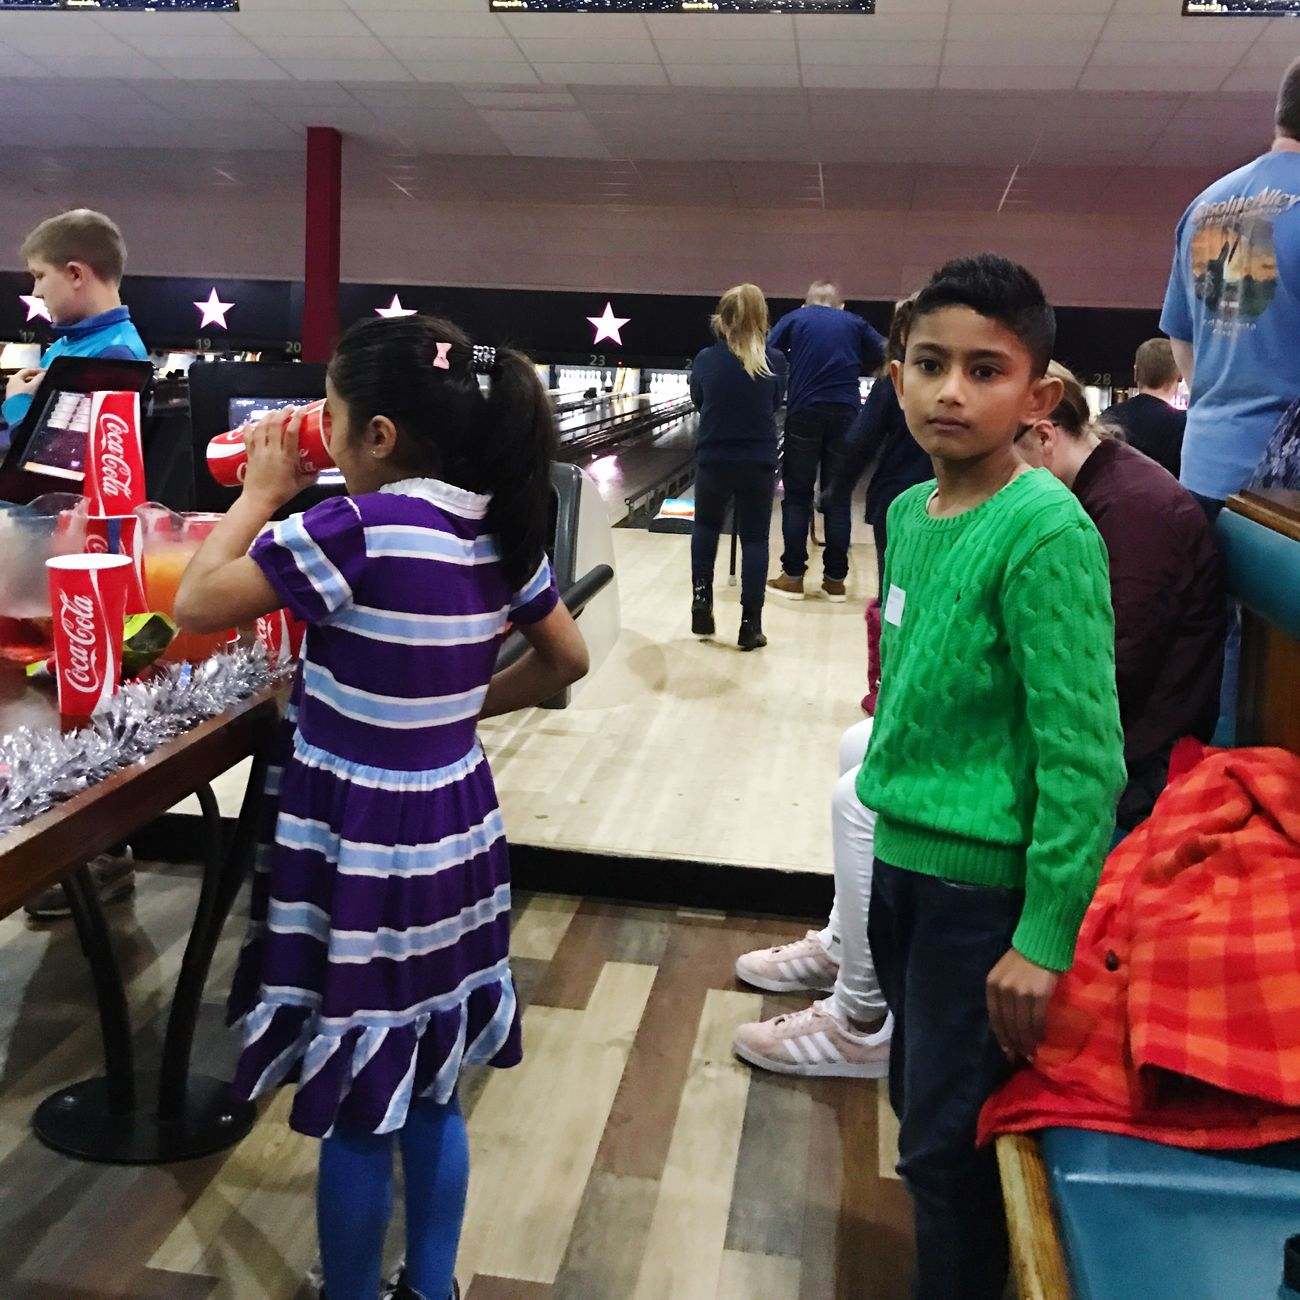 Adam Miah Amelia Miah Bowling Alley Bowling Boys Full Length Standing Indoors  People Day